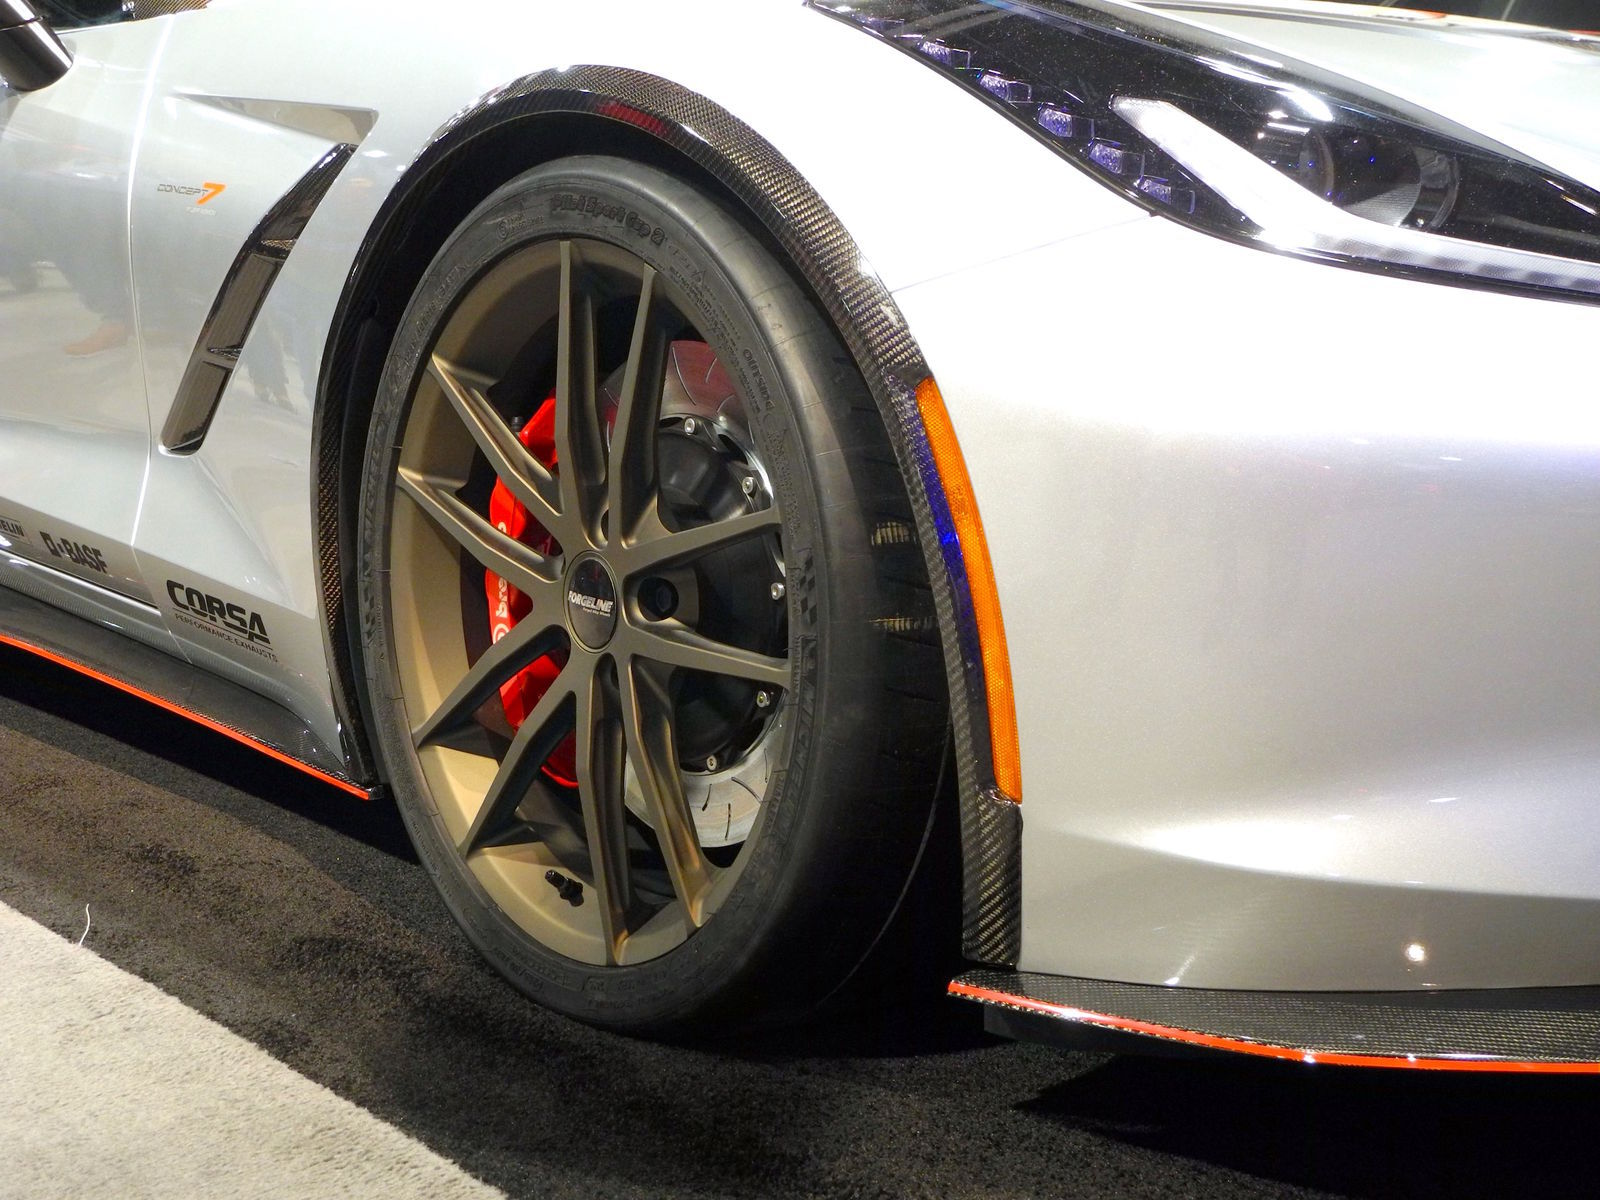 2015 Chevrolet Corvette | Nowicki Autosport Design Concept 7 Corvette on Forgeline One Piece Forged Monoblock AR1 Wheels